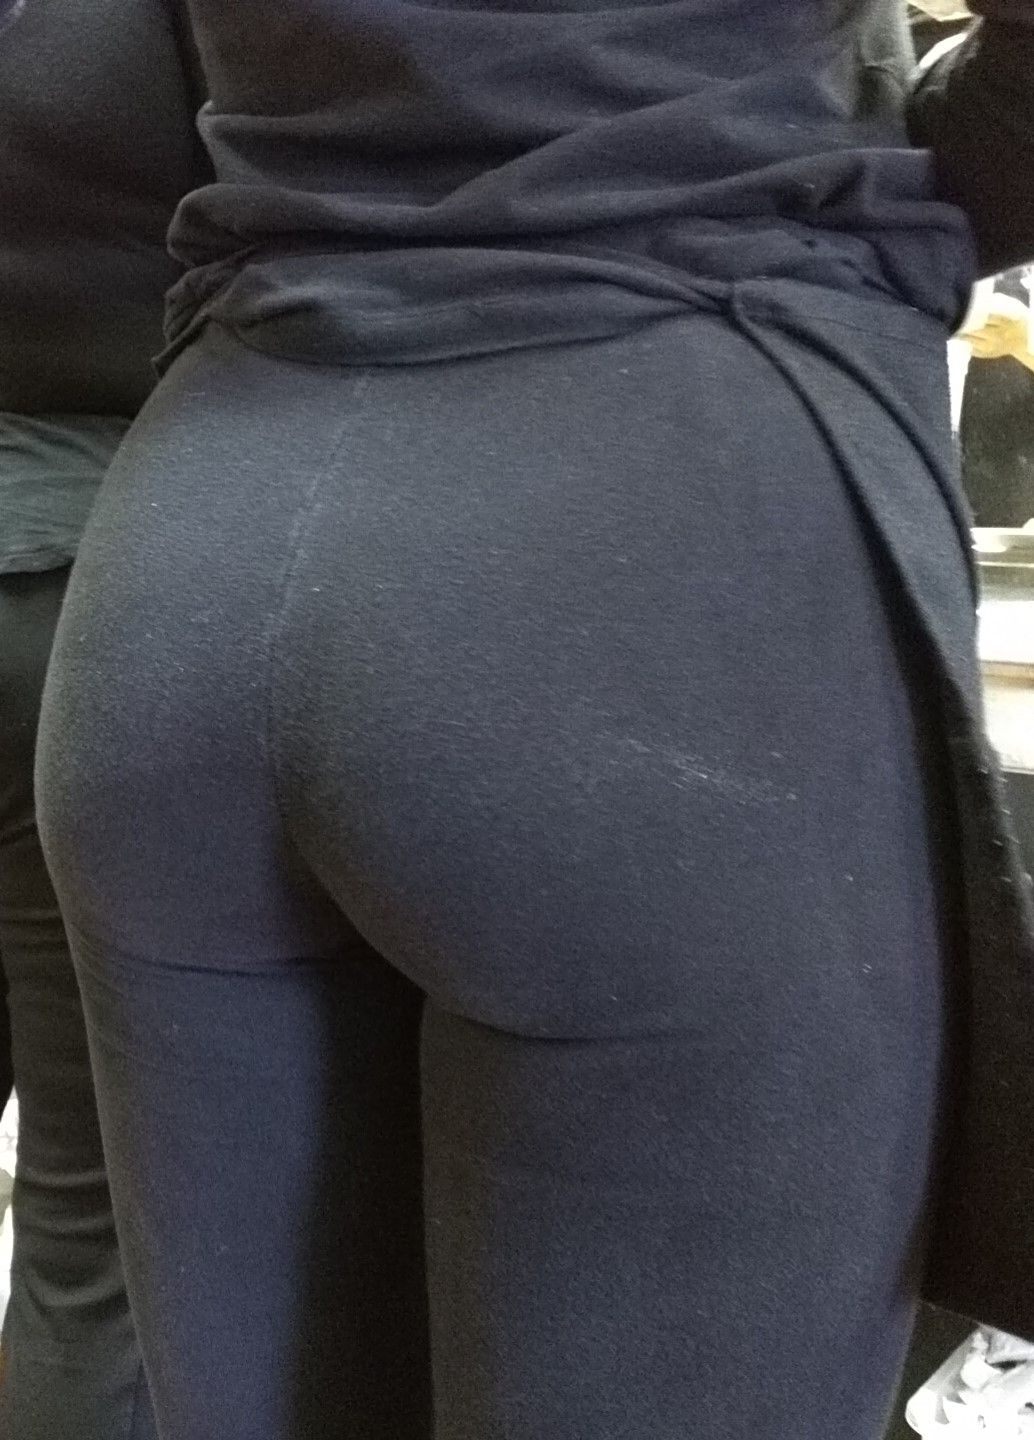 ass in black pants